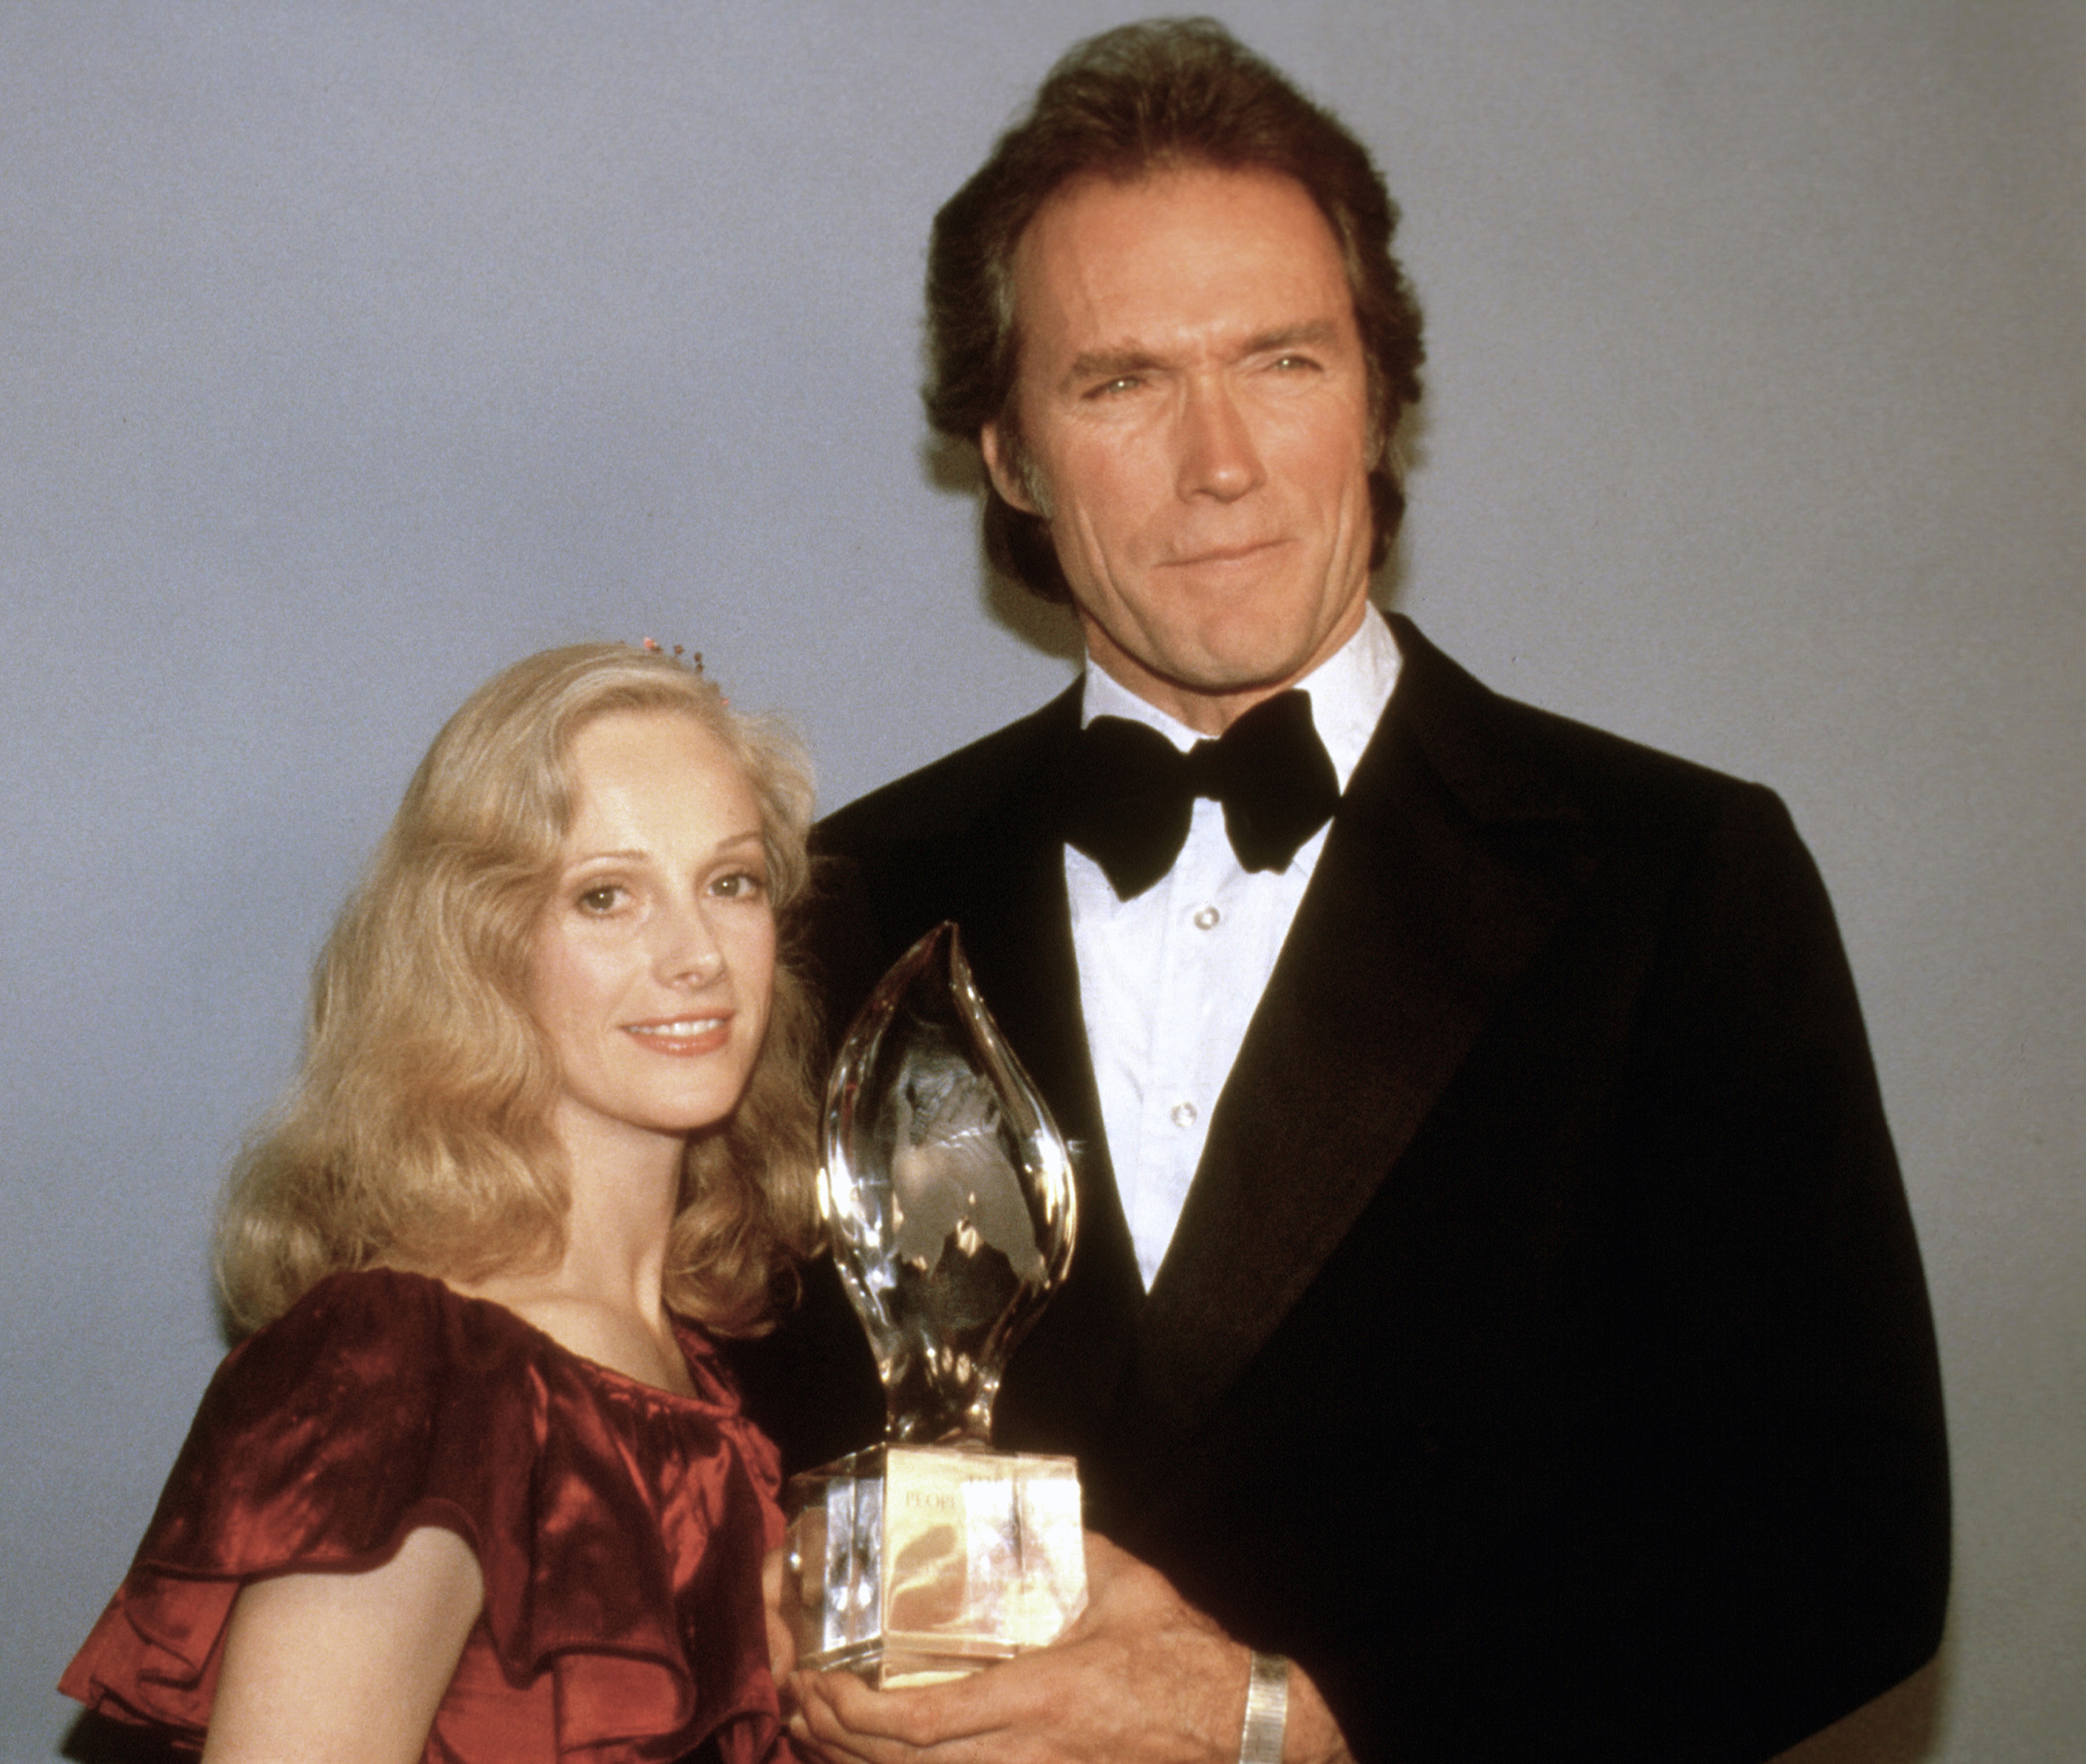 FILE - Clint Eastwood poses with his girlfriend Sondra Locke, March 5, 1981, and his People's Choice Award for favorite motion picture actor in Los Angeles.